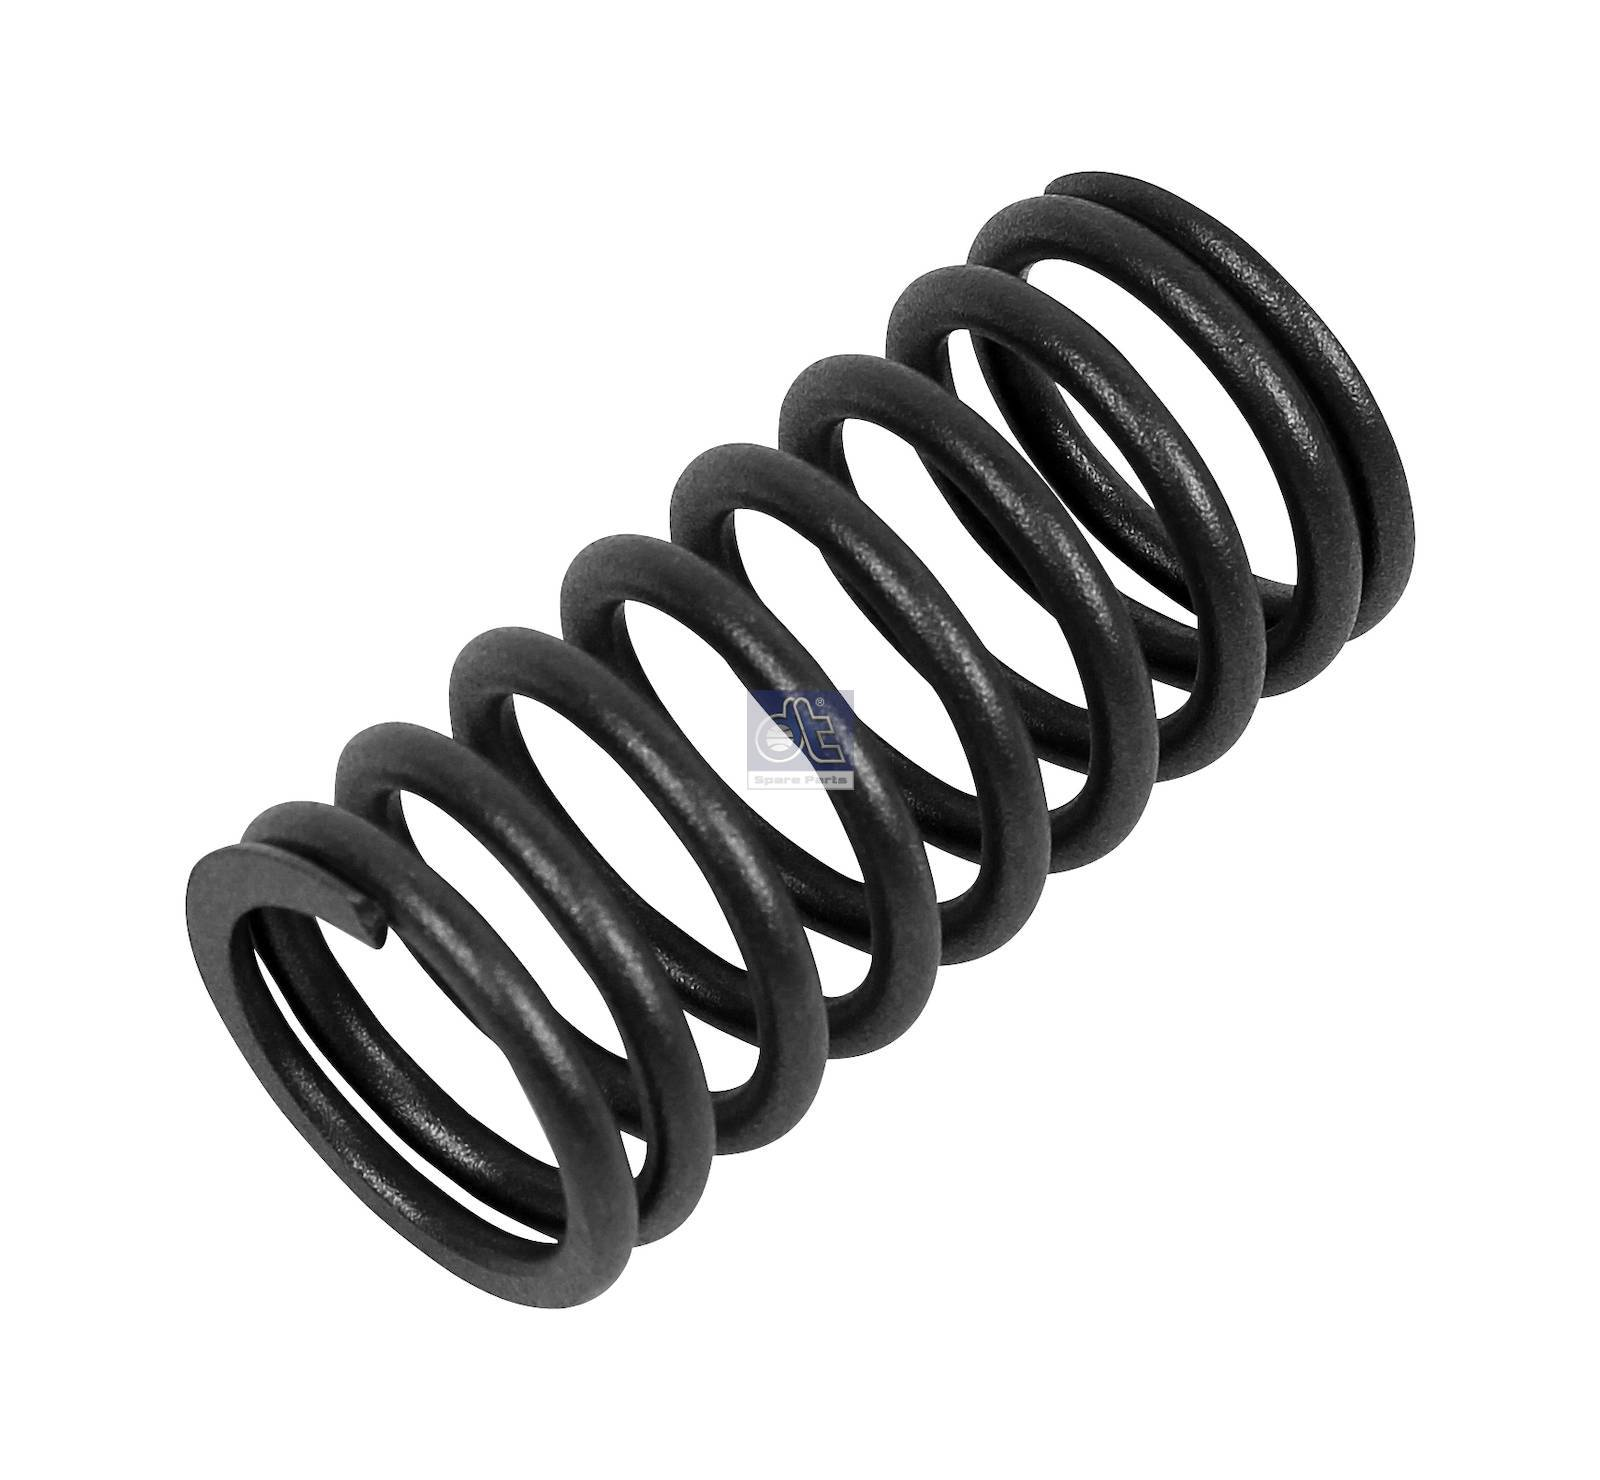 Valve spring, intake and exhaust, inner